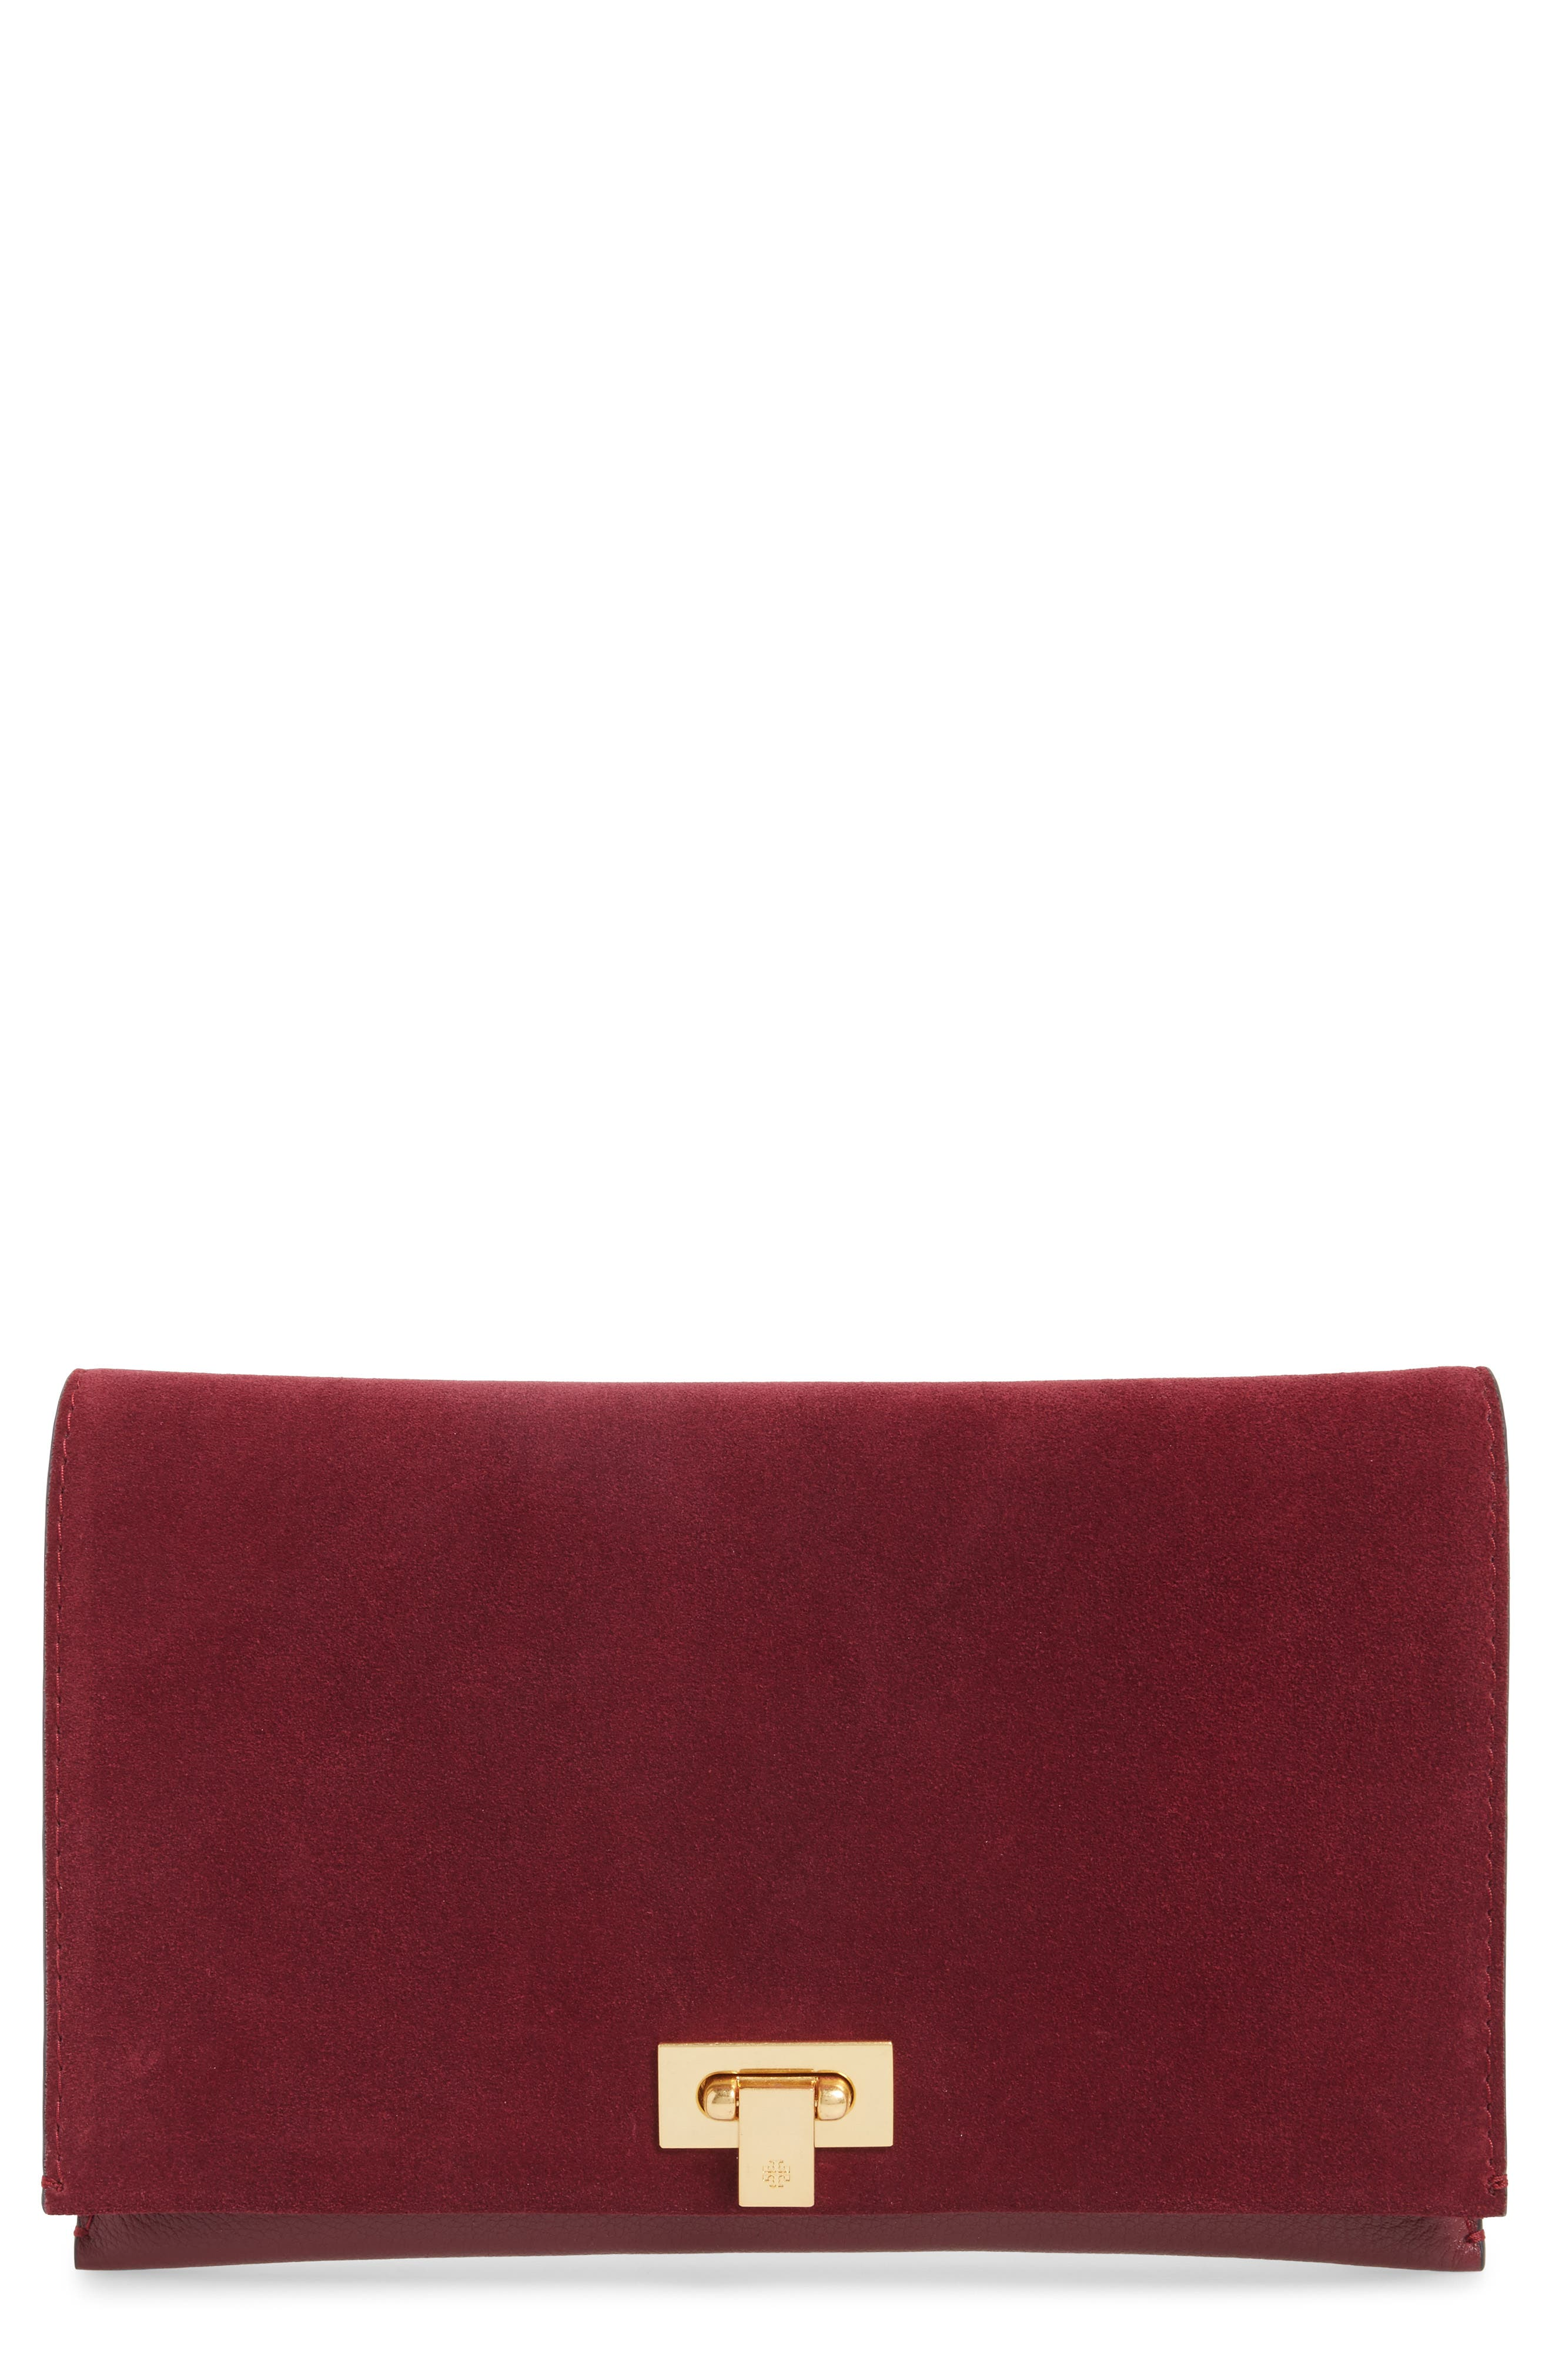 Alternate Image 1 Selected - Tory Burch Carmen Leather Clutch